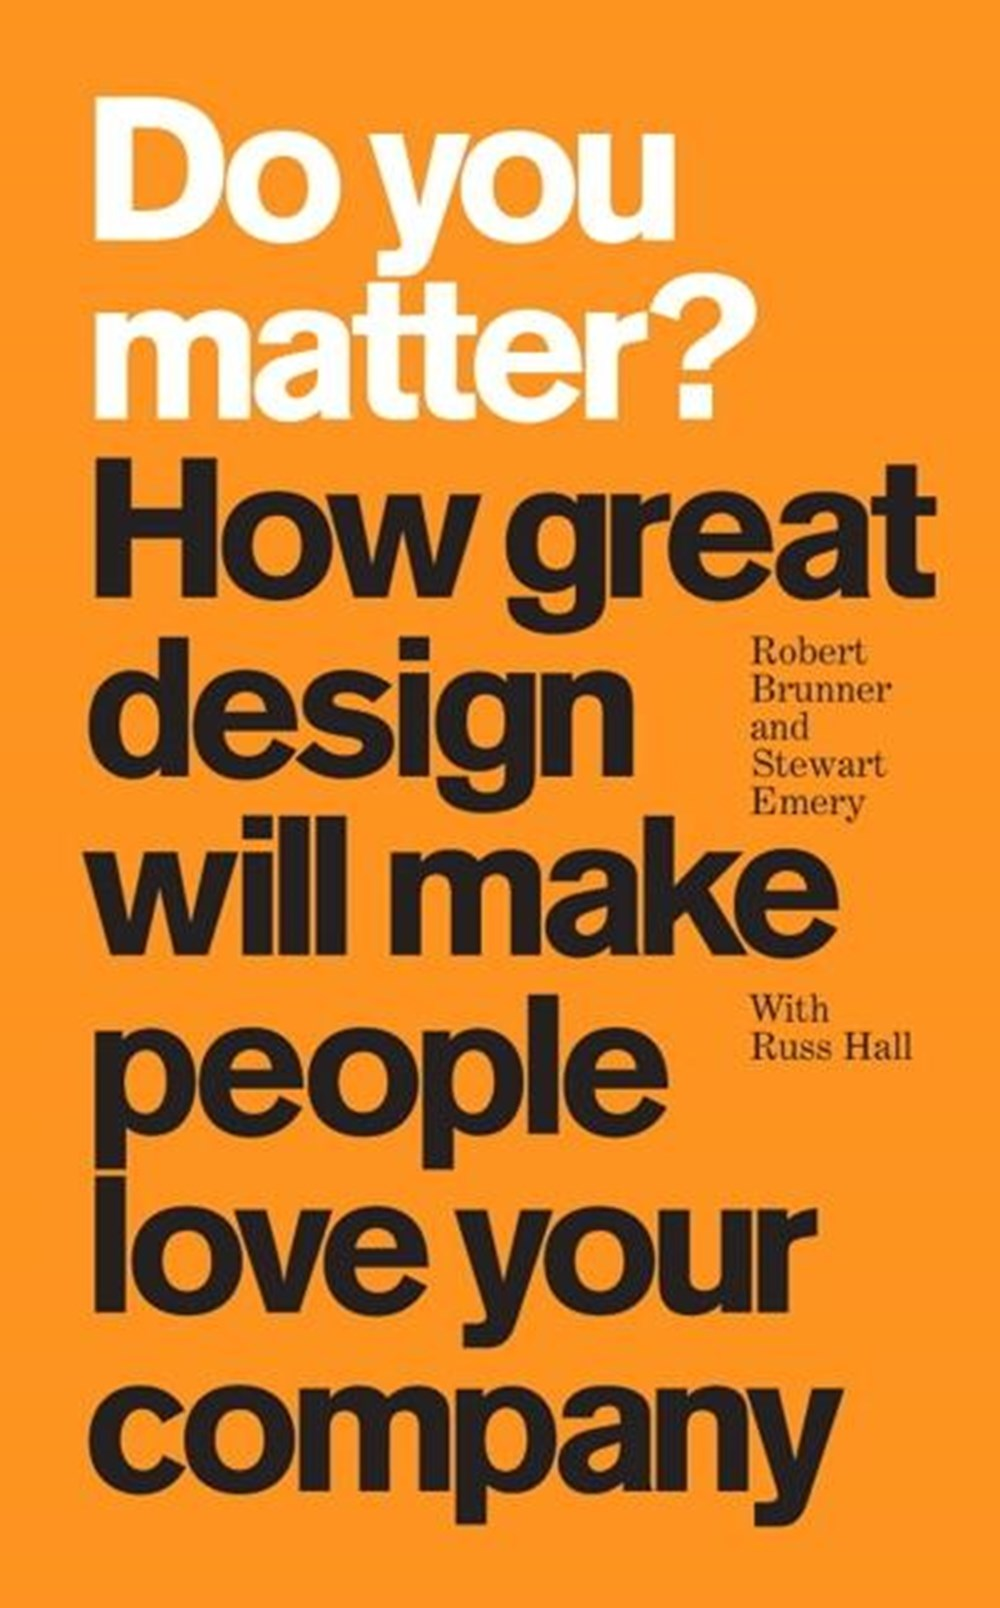 Do You Matter? How Great Design Will Make People Love Your Company (Paperback)